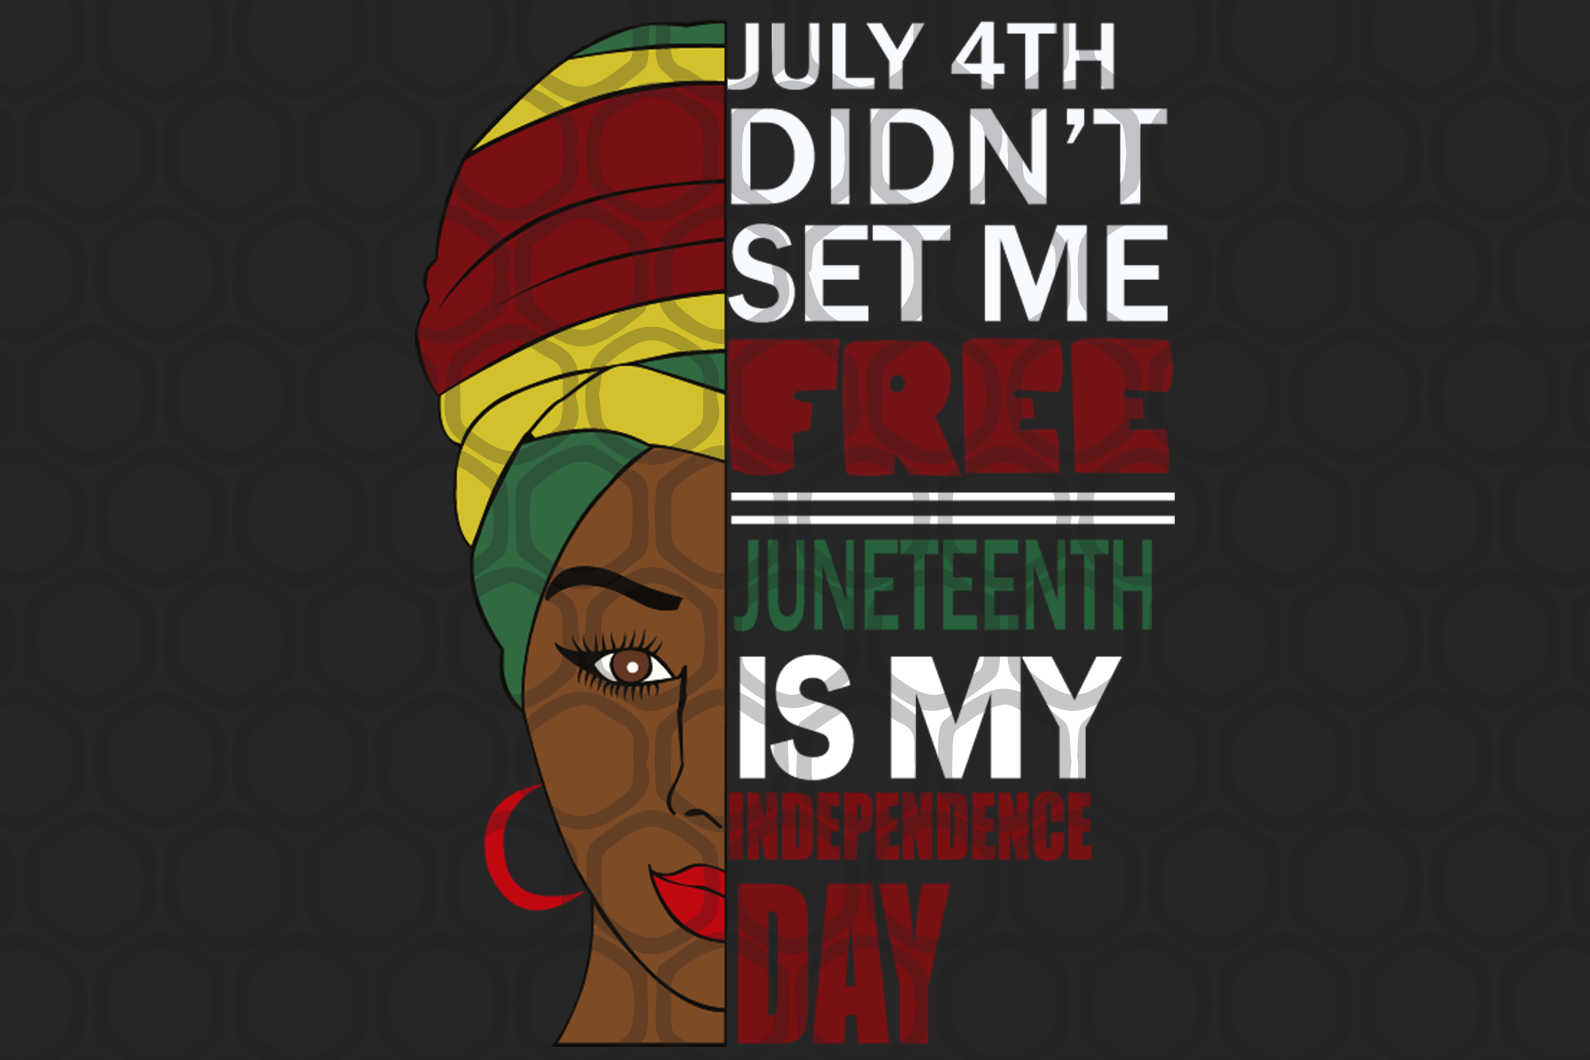 July 4th didn't set me free svg,freedom day svg,June 19th svg,emancipation day svg,1776 July 4th,independence day svg,black African hands,American pride gift,black lives matter shirt,black history month,silhouette svg, cricut svg files, decal and vinyl,